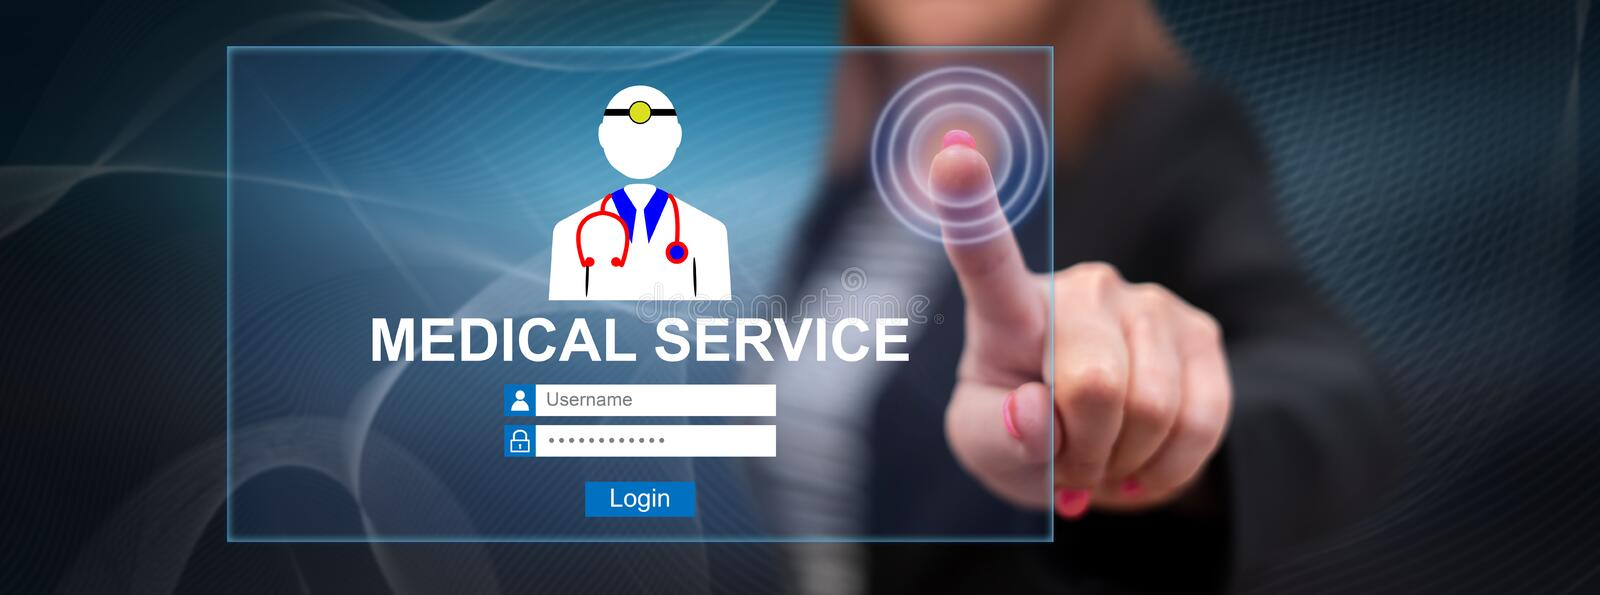 Woman touching an online medical service concept royalty free stock photography